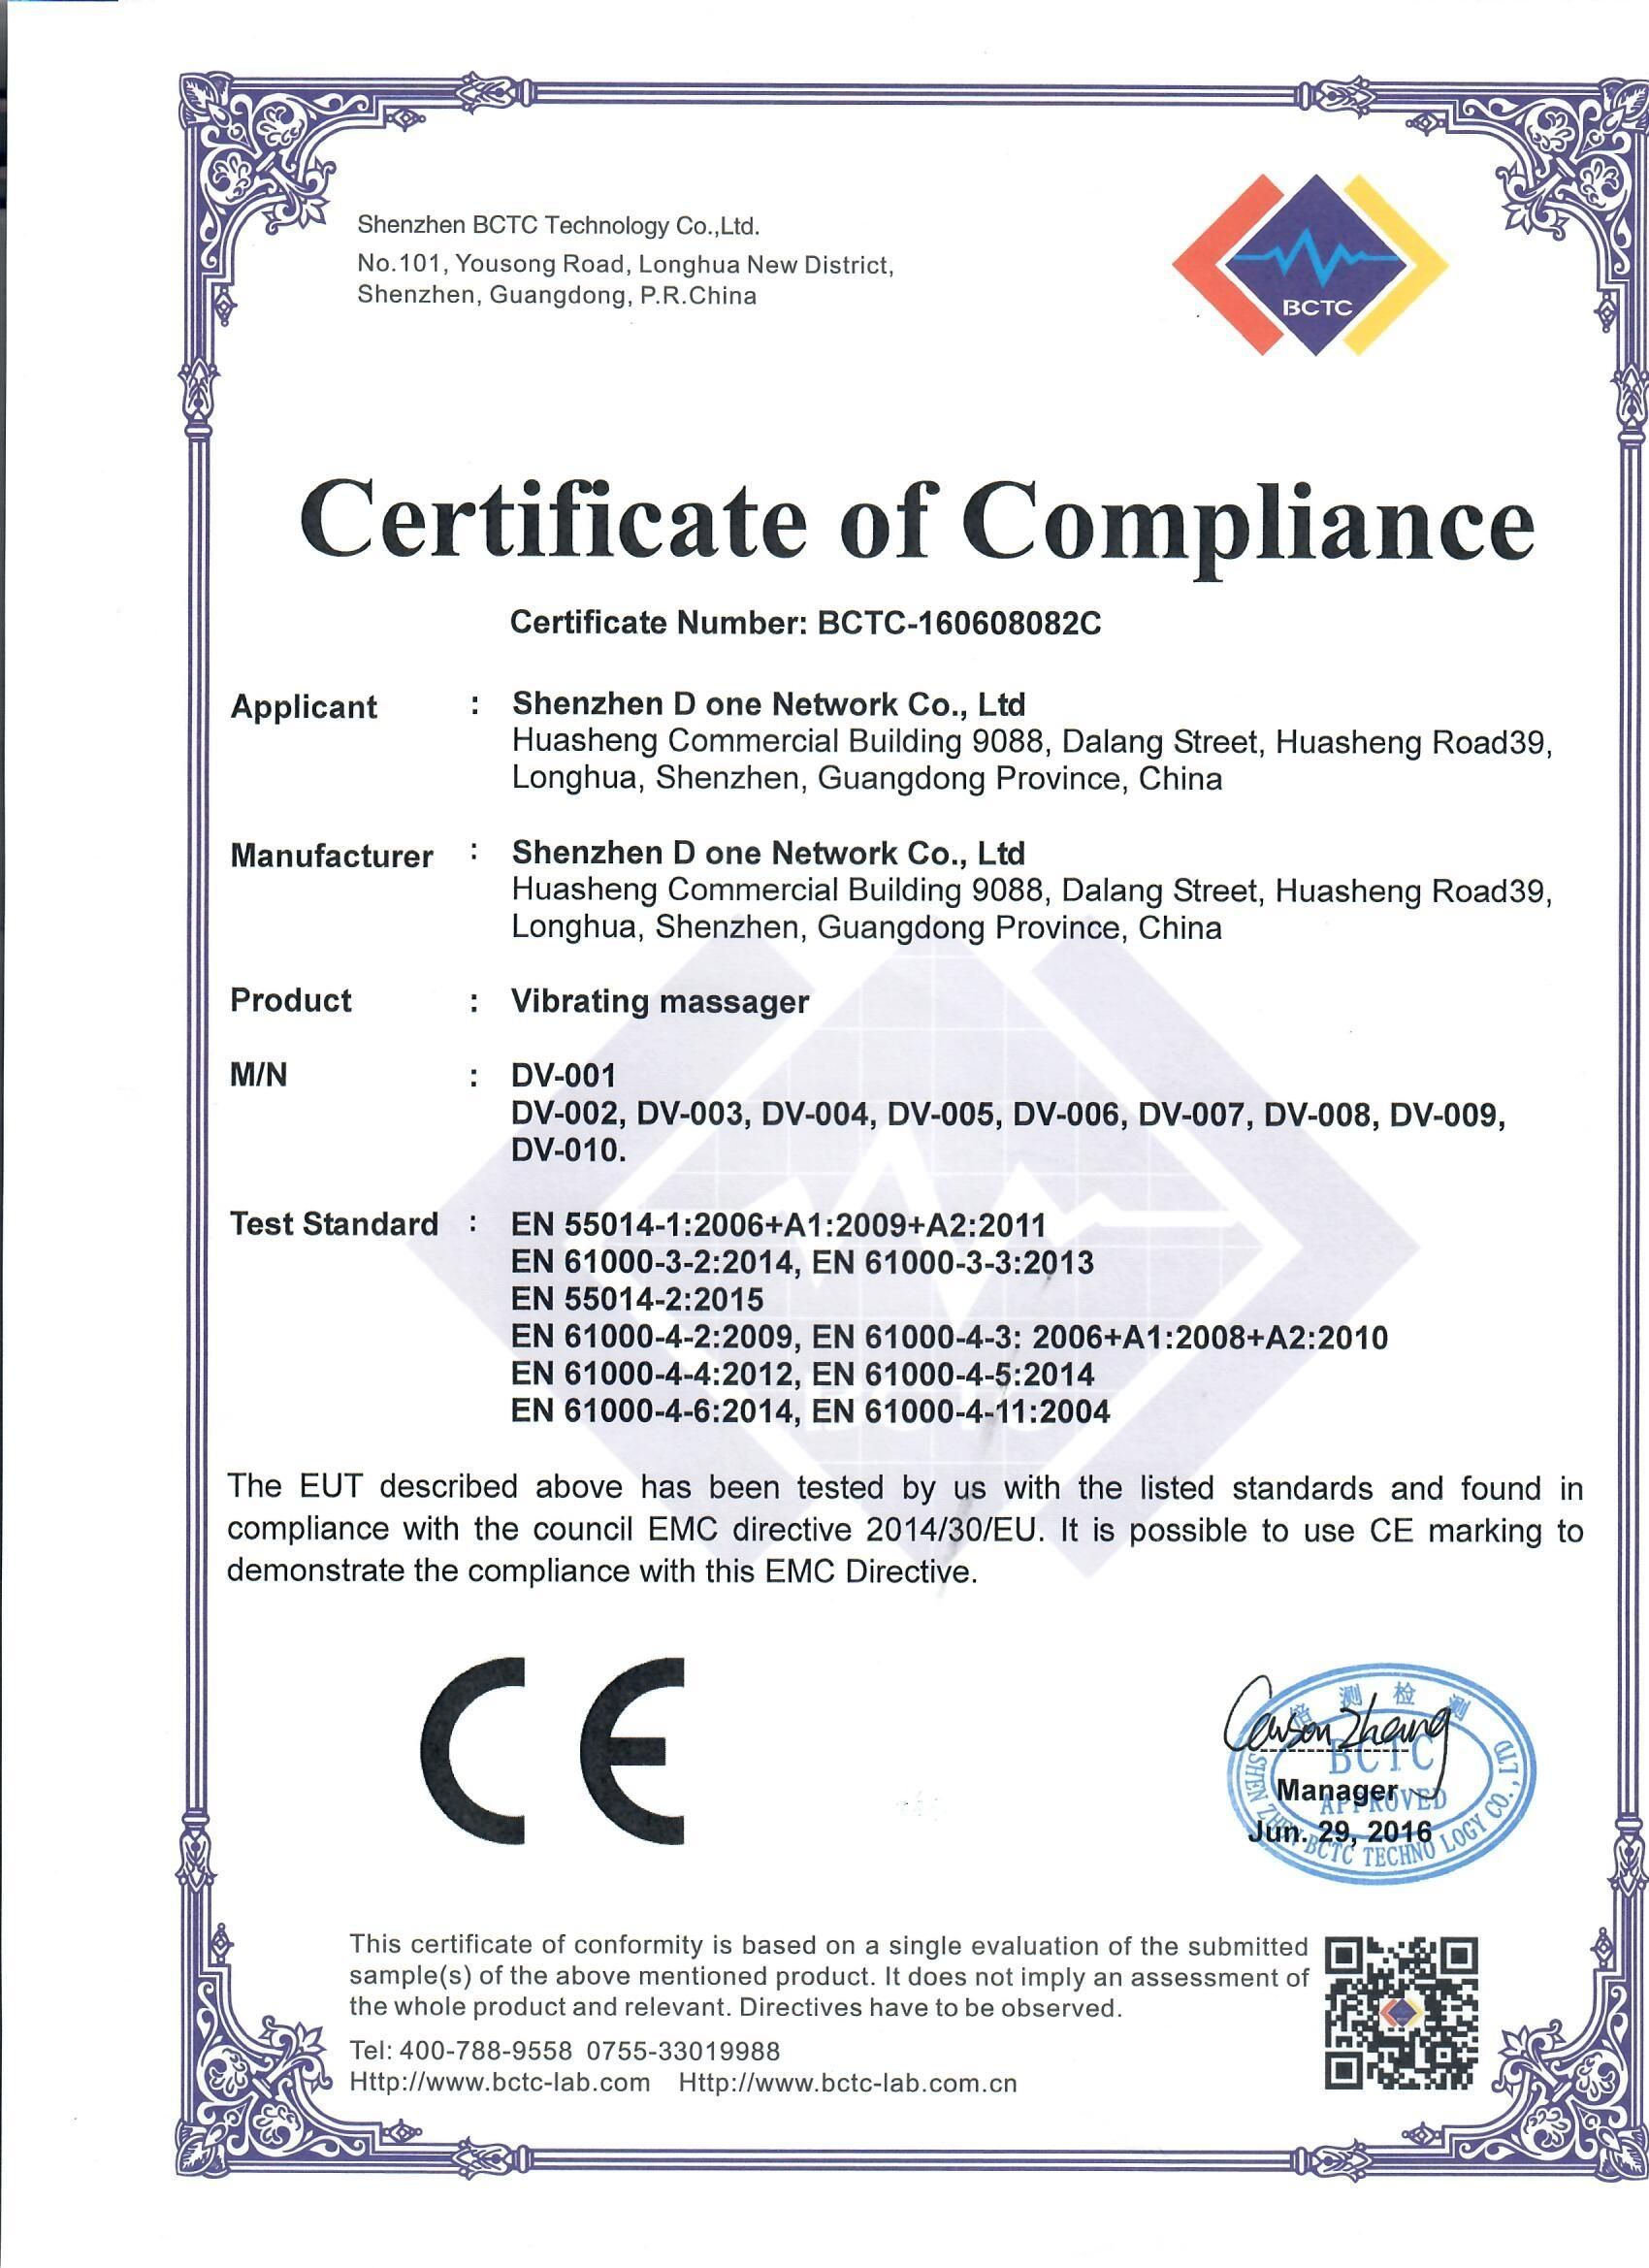 Ce Emc For The Vibrating Massager Commercial Technology Networking Rohs certificate of compliance template